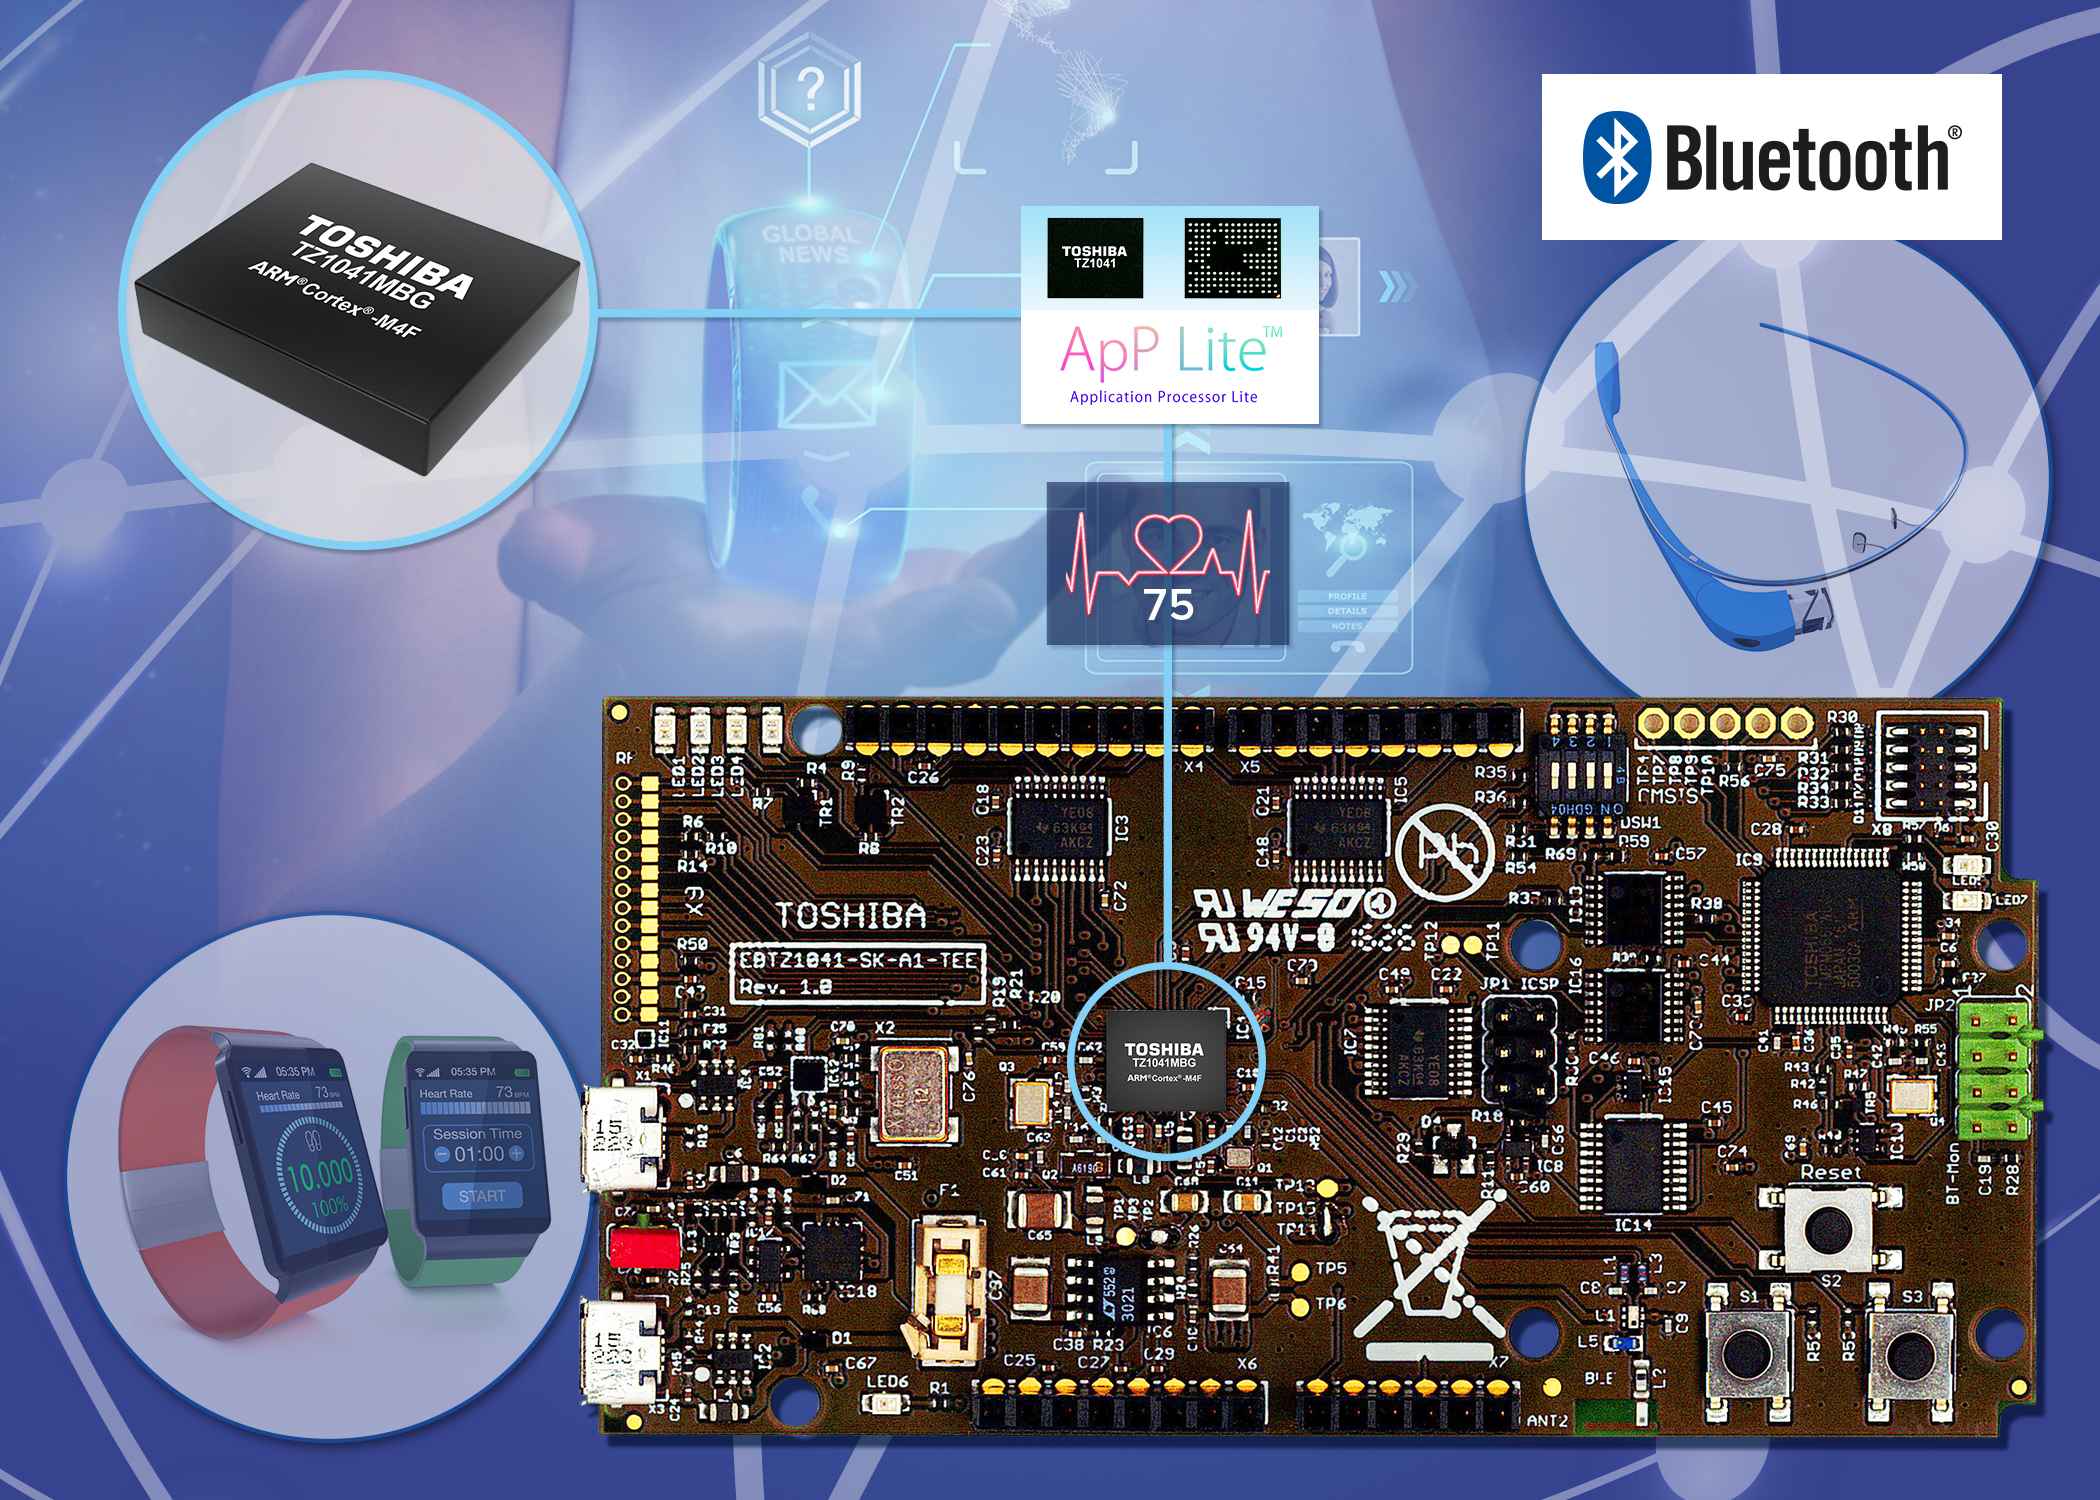 Toshiba Launches IoT Development Kit for Design of Bluetooth